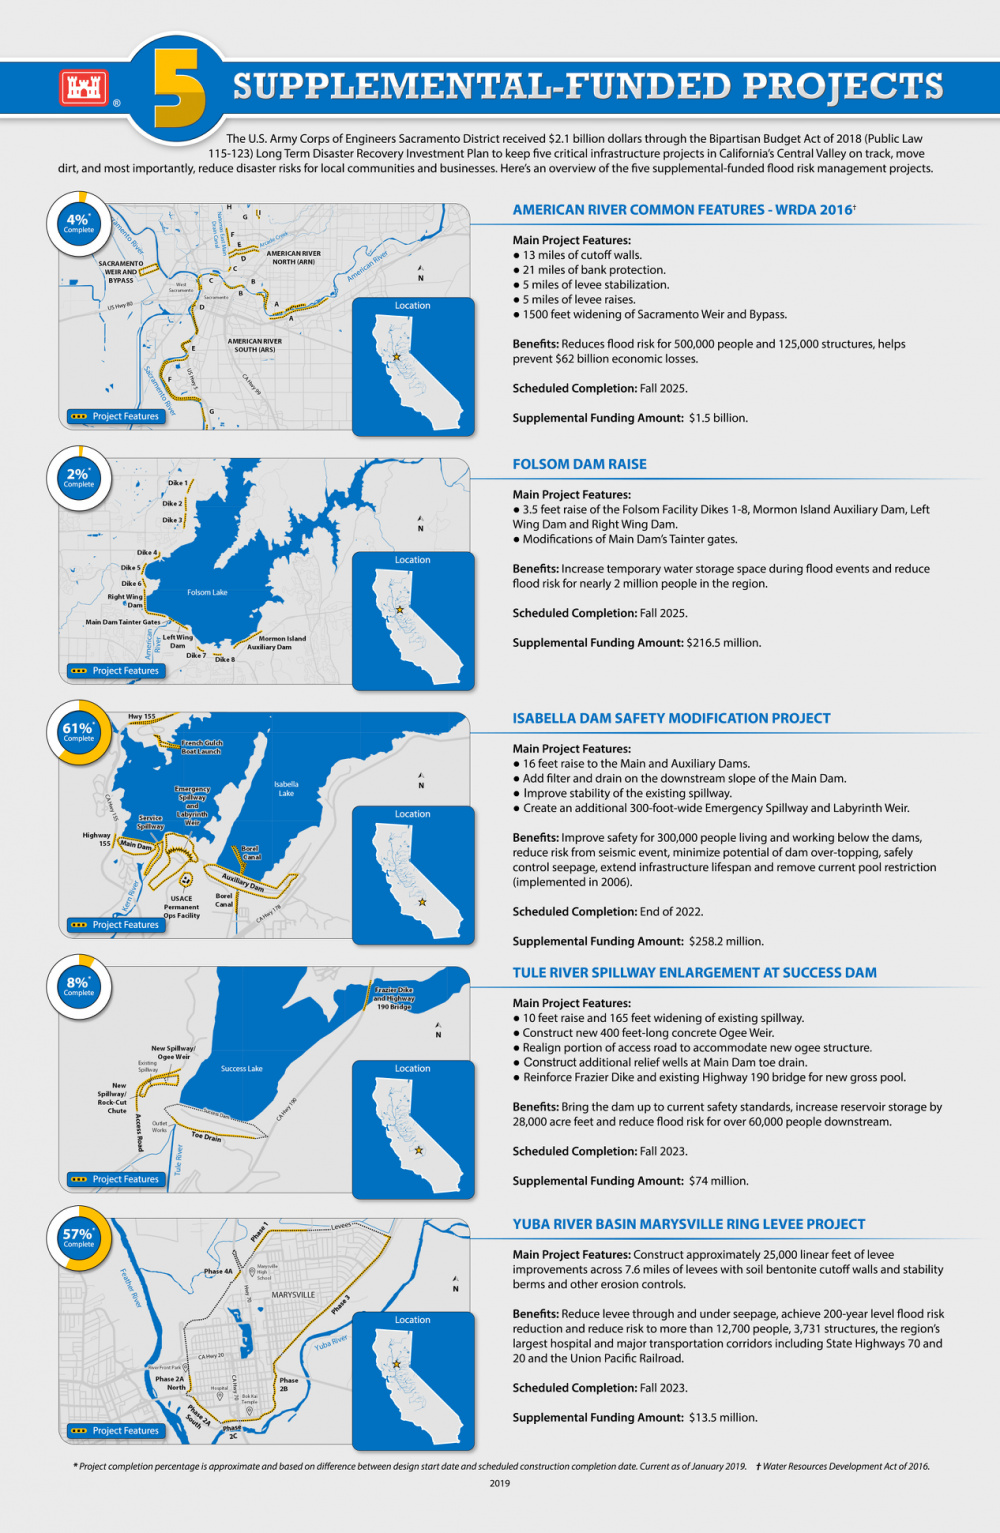 Supplemental-Funded Projects Infographic